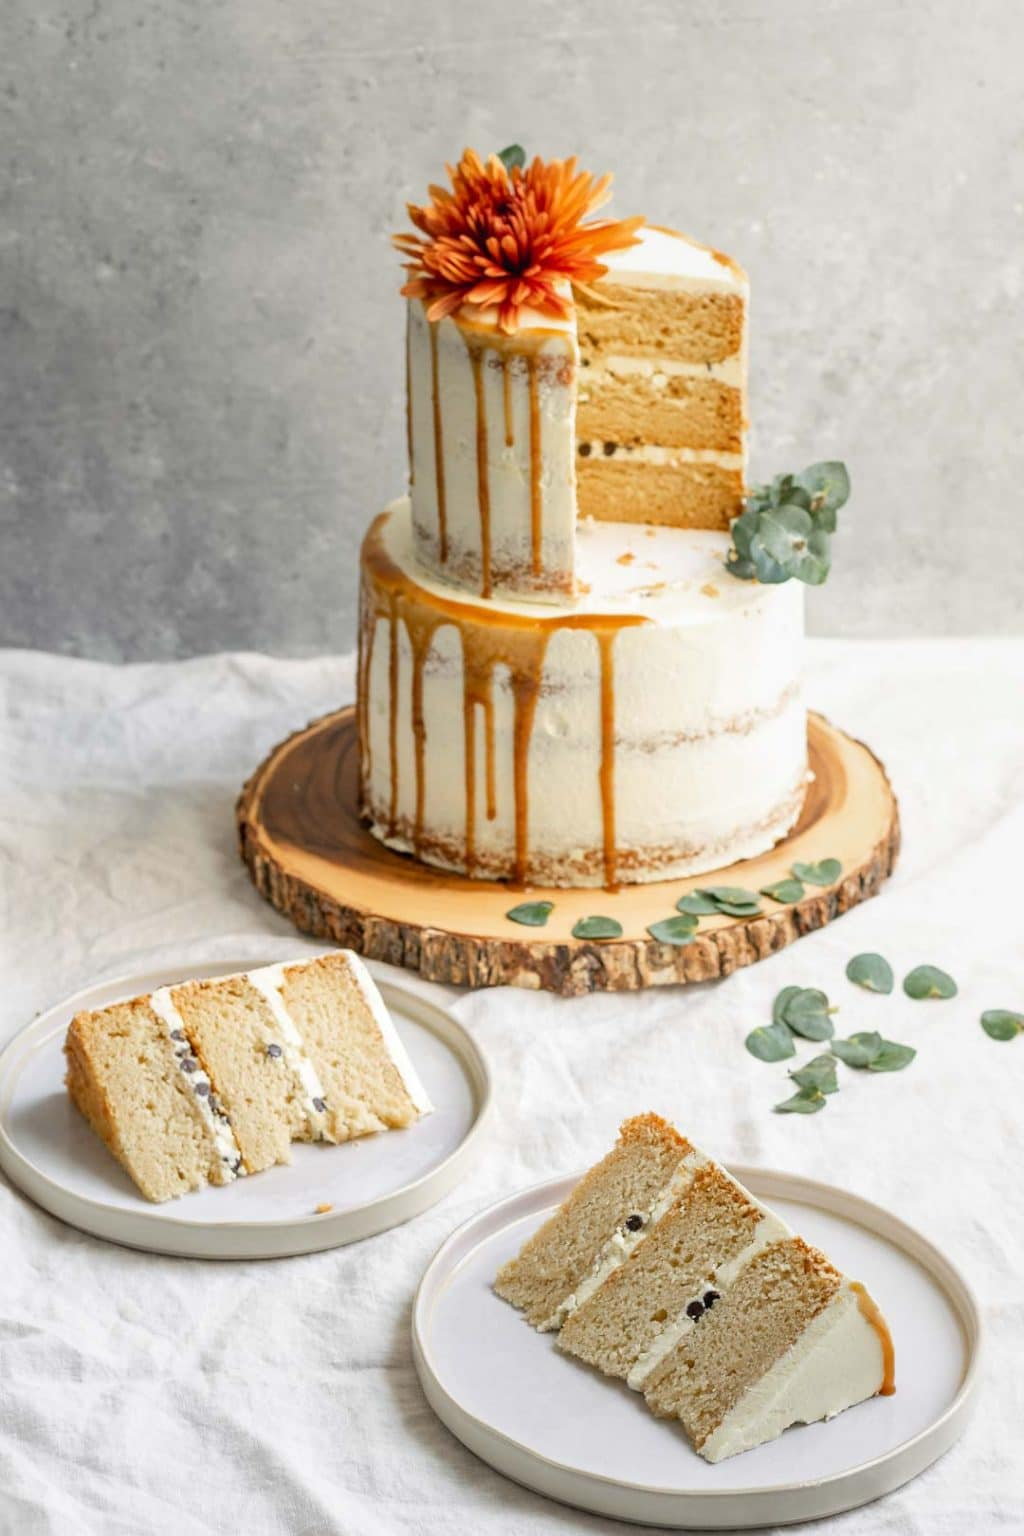 Two slices from the top tier of a 2-tier vegan vanilla cake